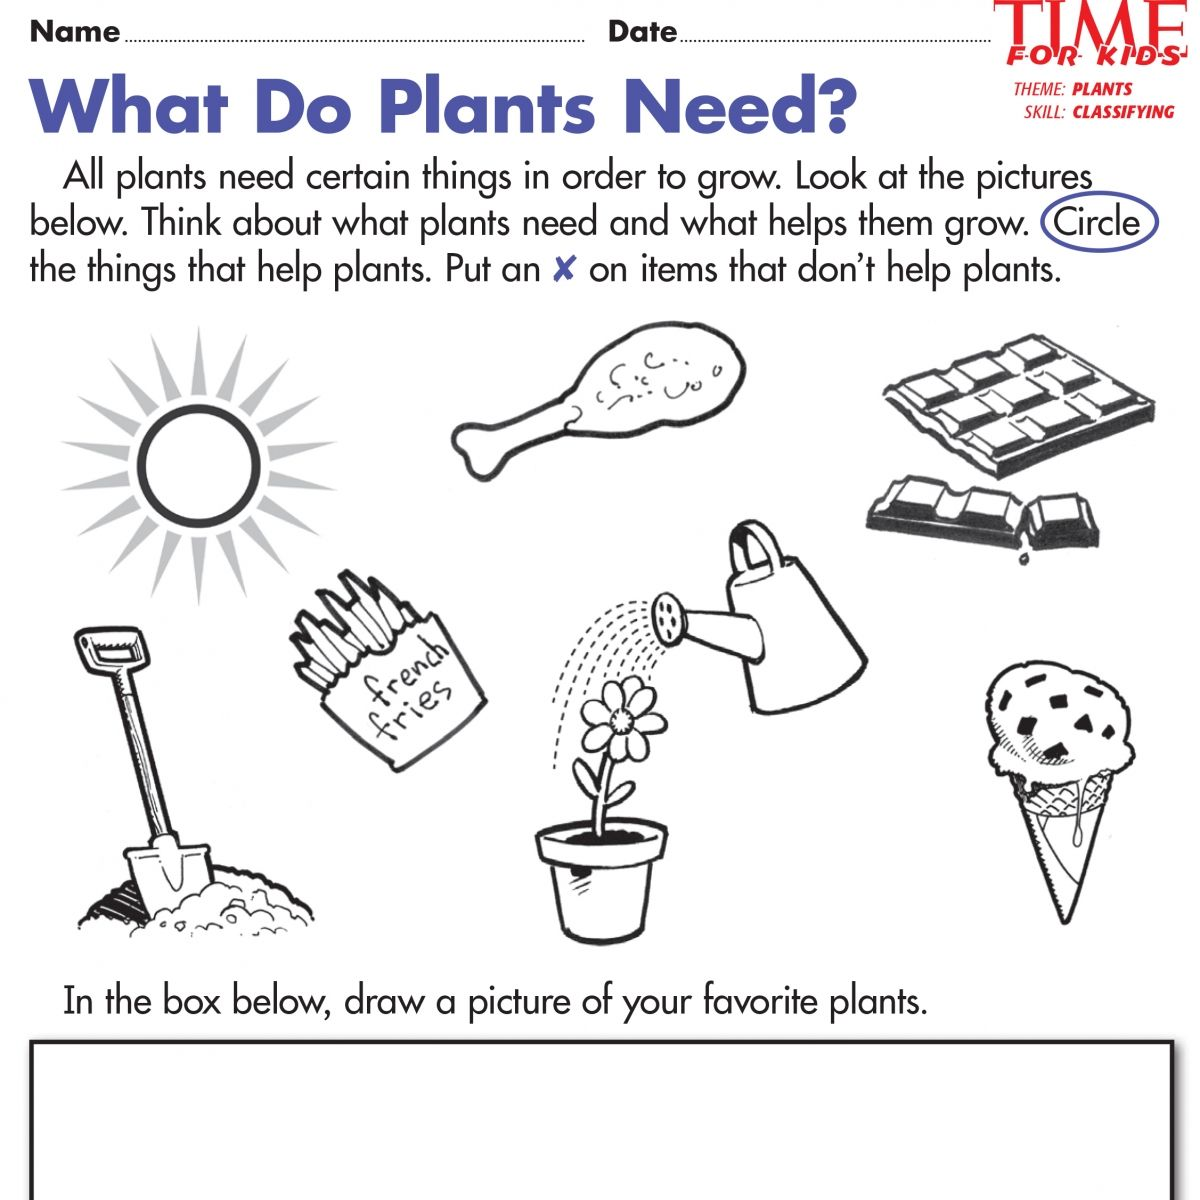 small resolution of plant worksheets for kindergarten - Google Search   Kindergarten worksheets